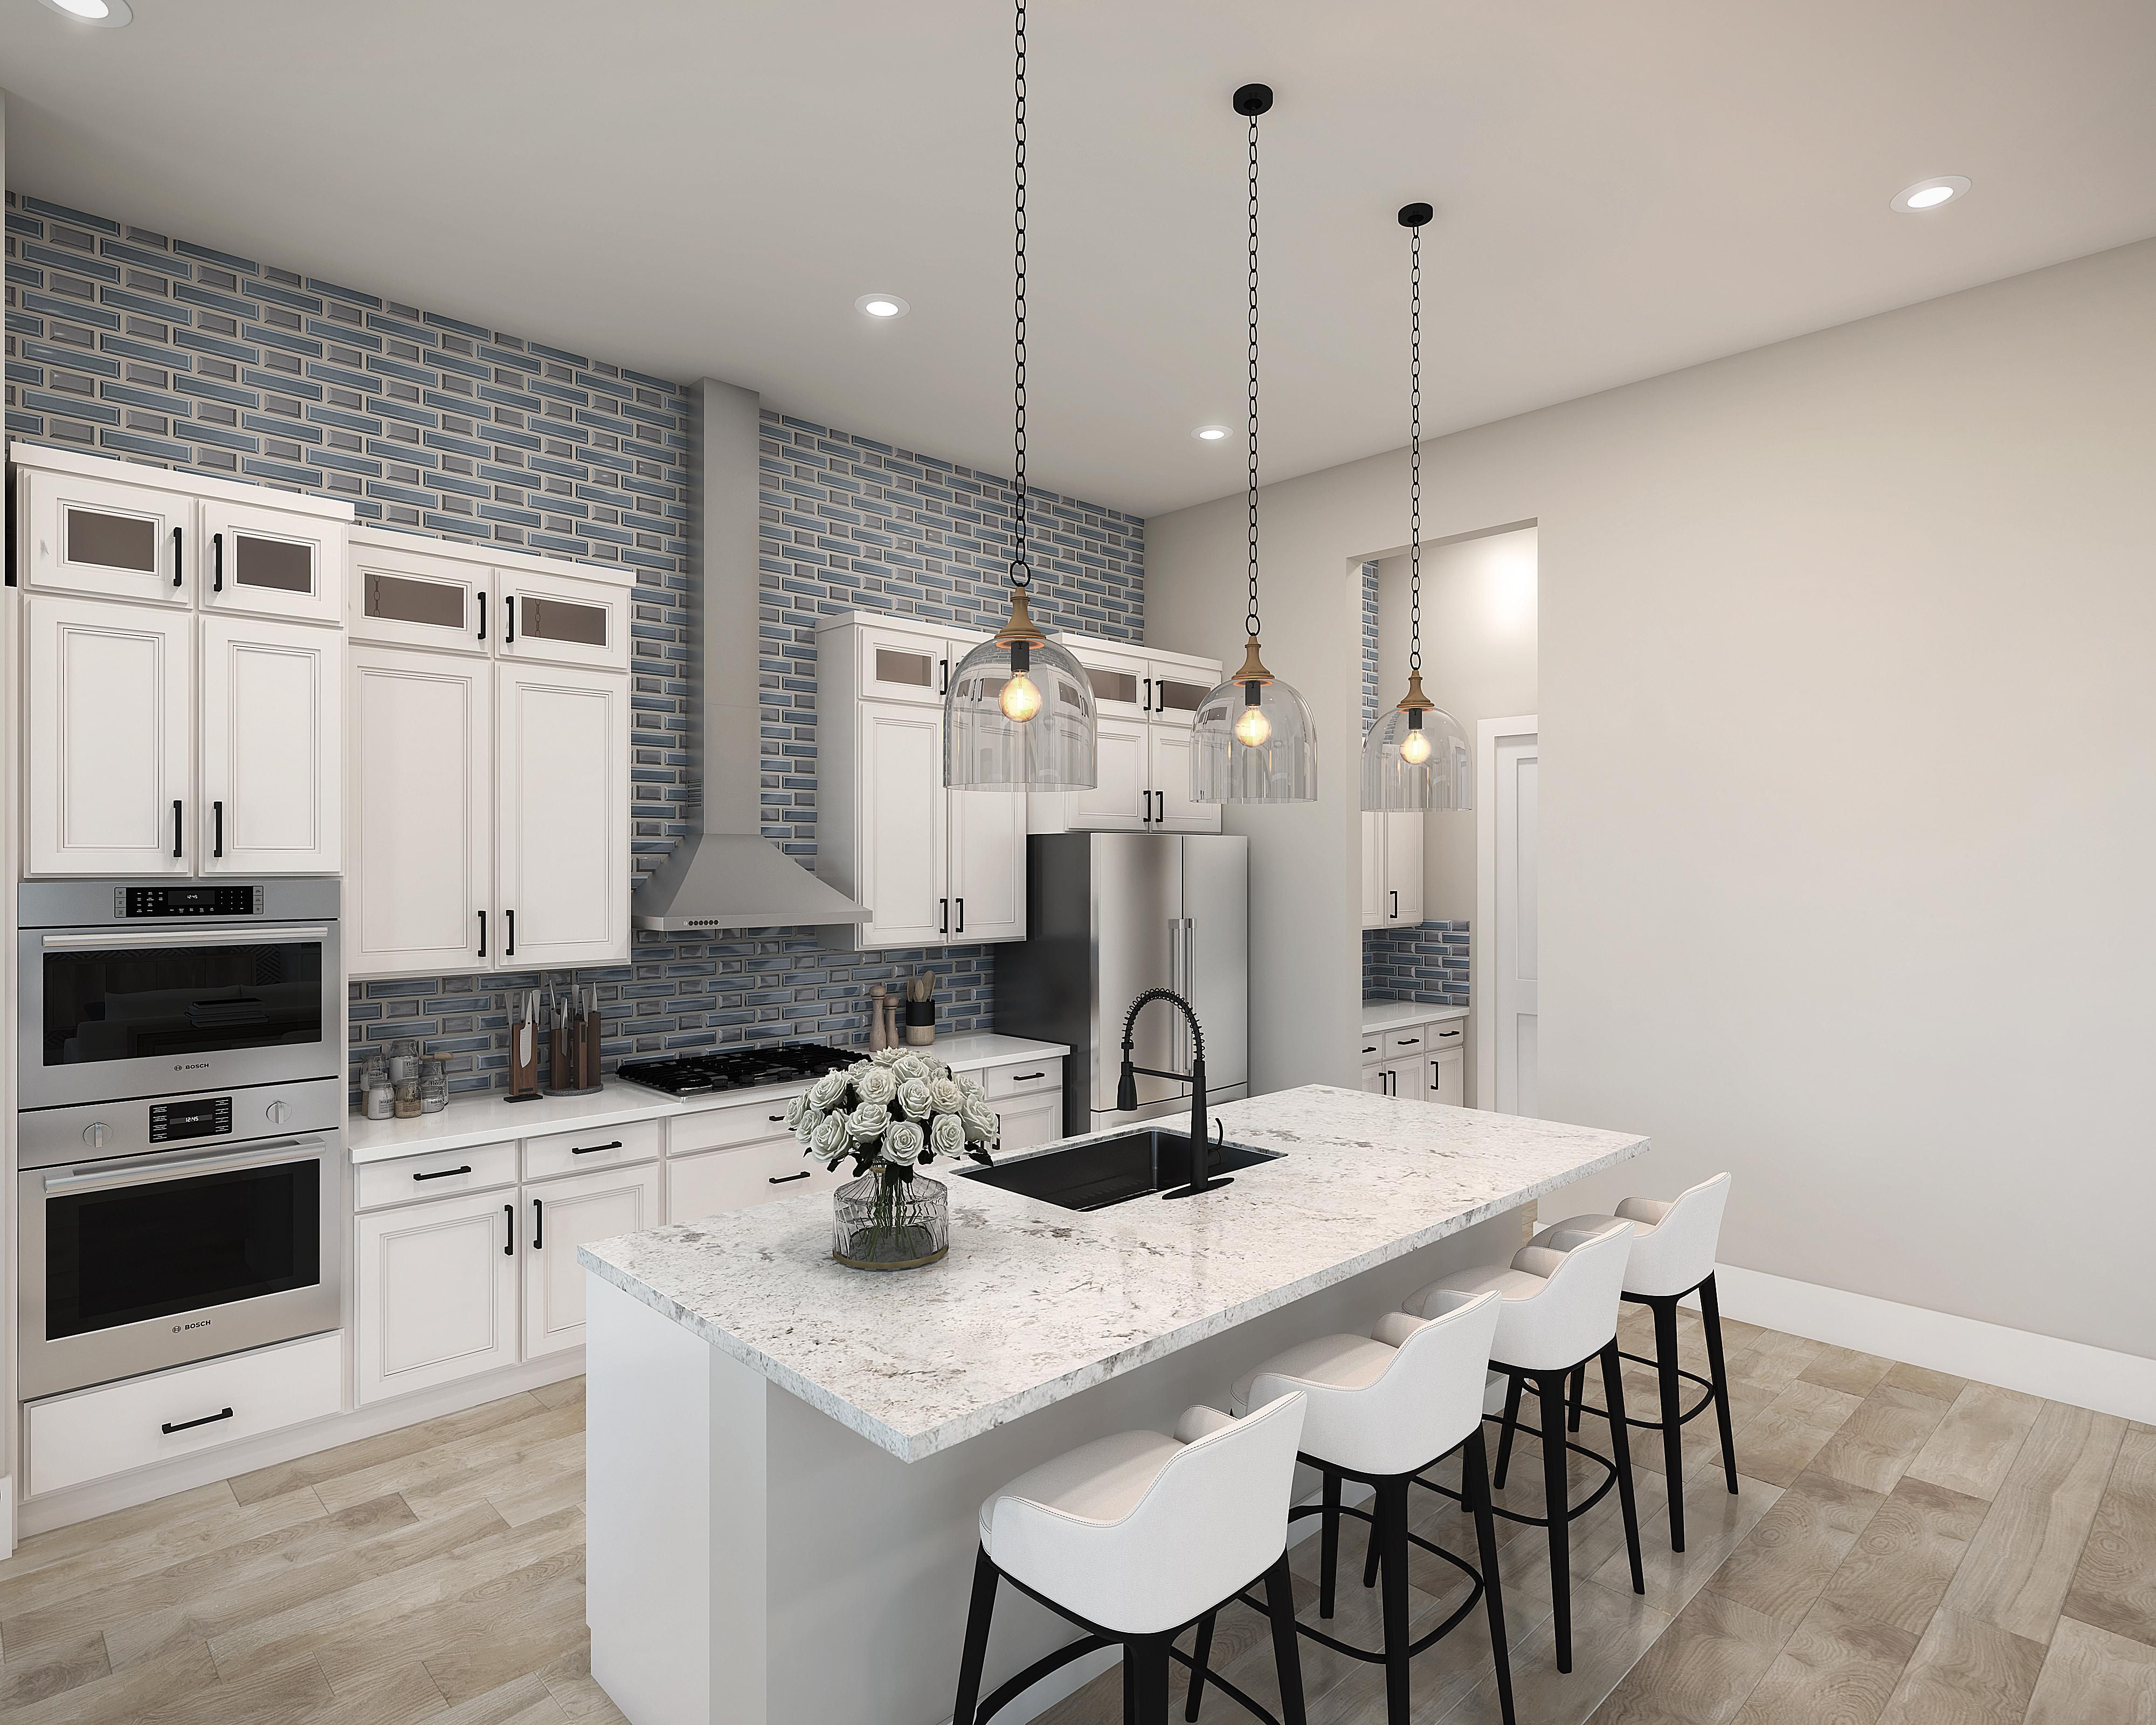 Kitchen featured in the Residence One - Farmhouse By Copper Valley  in Stockton-Lodi, CA